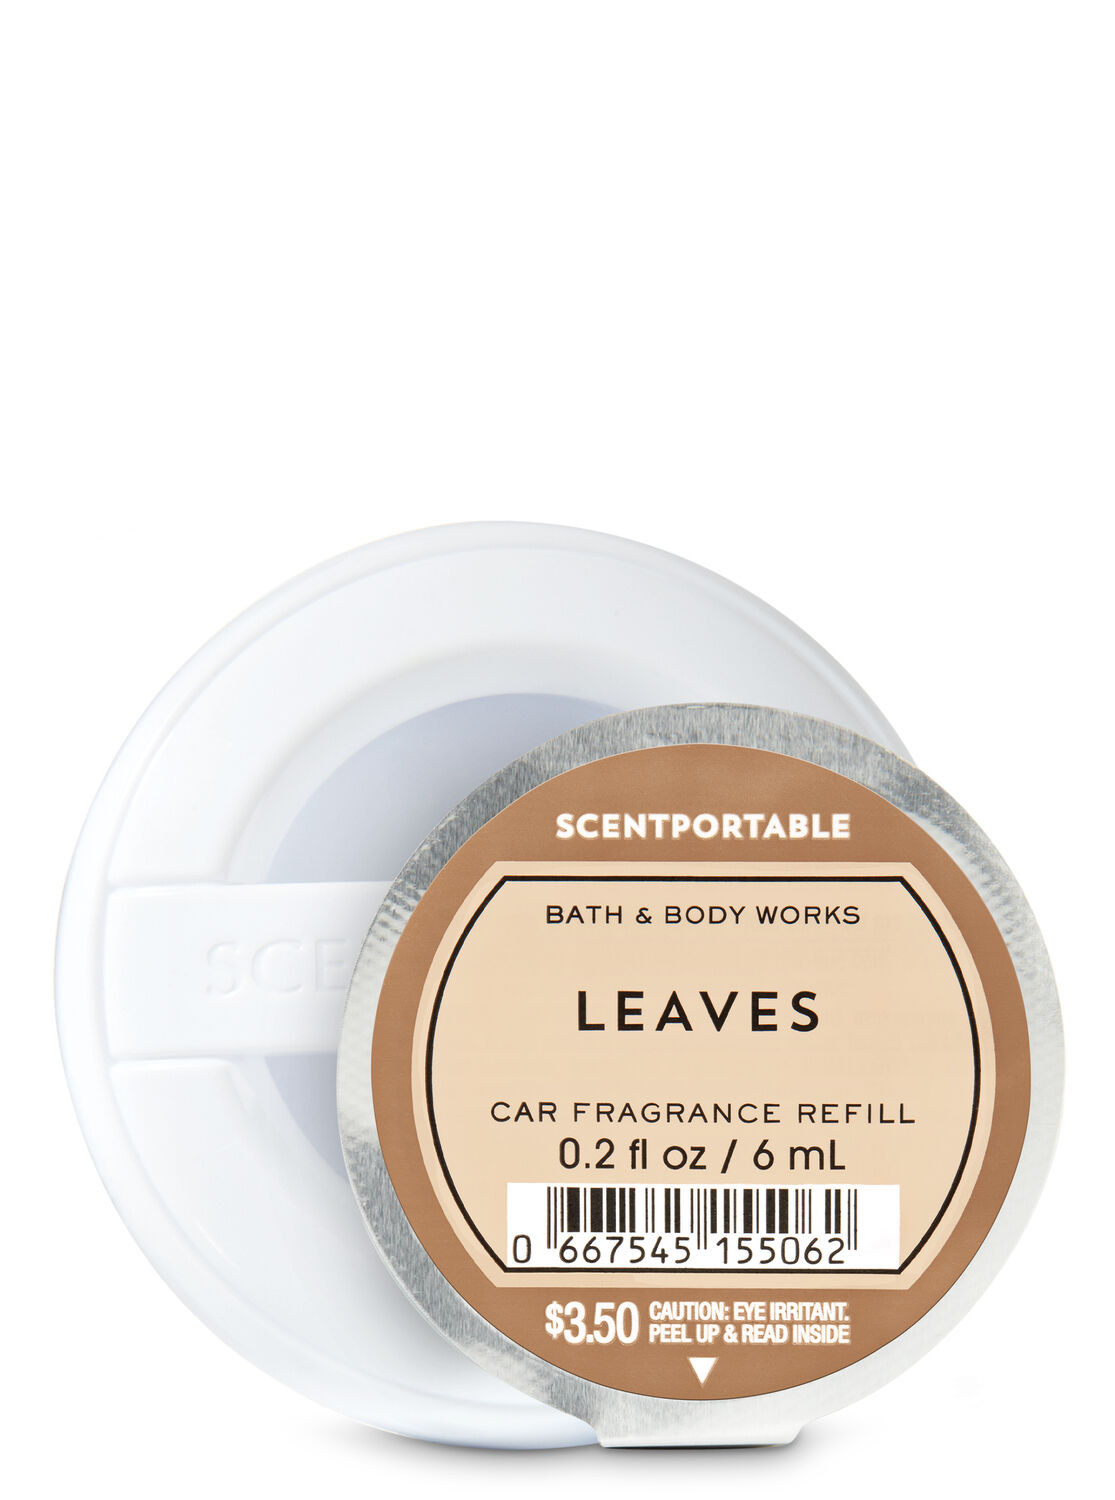 Leaves Scentportable Fragrance Refill | Bath & Body Works